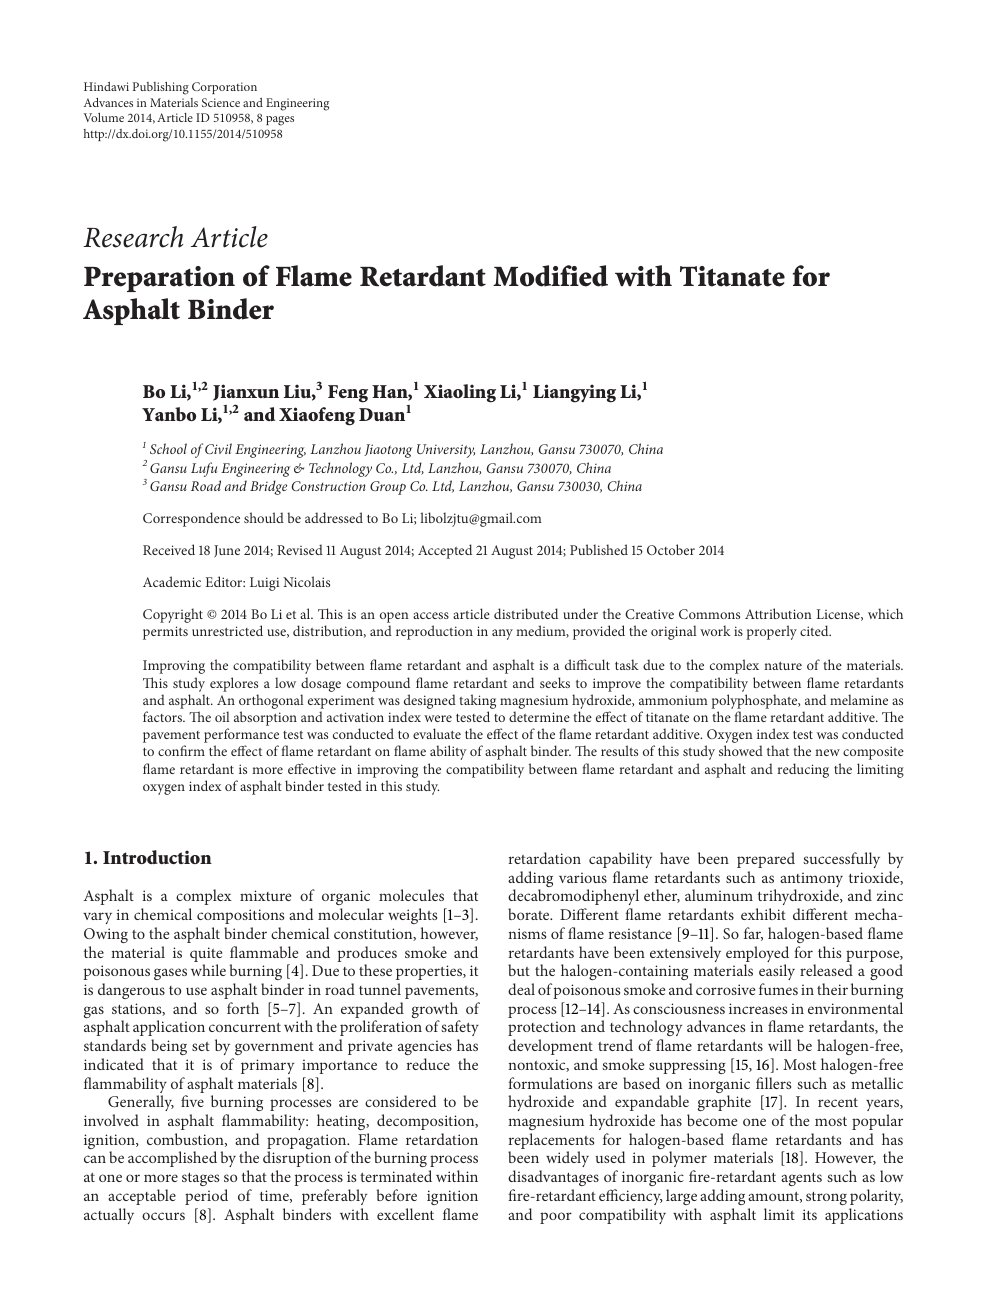 Preparation of Flame Retardant Modified with Titanate for